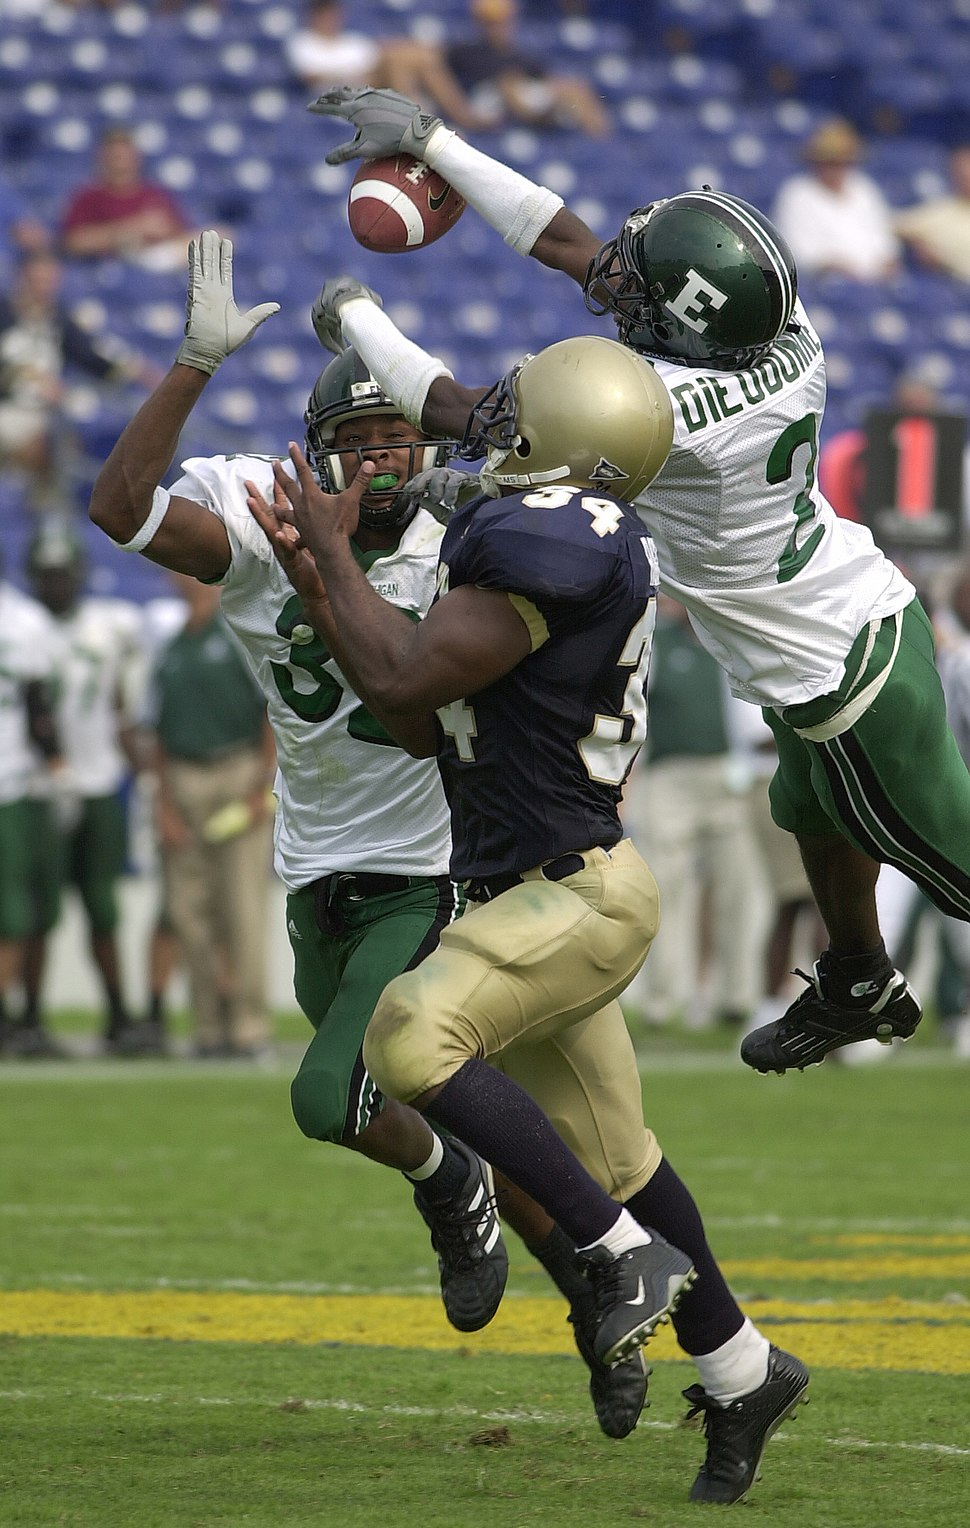 US Navy 030920-N-9693M-002 Eastern Michigan University (EMU) defenders, Jerry Gaines, left, and Yves Dieudonne, right, block a pass intended for Navy slot back Eric Roberts